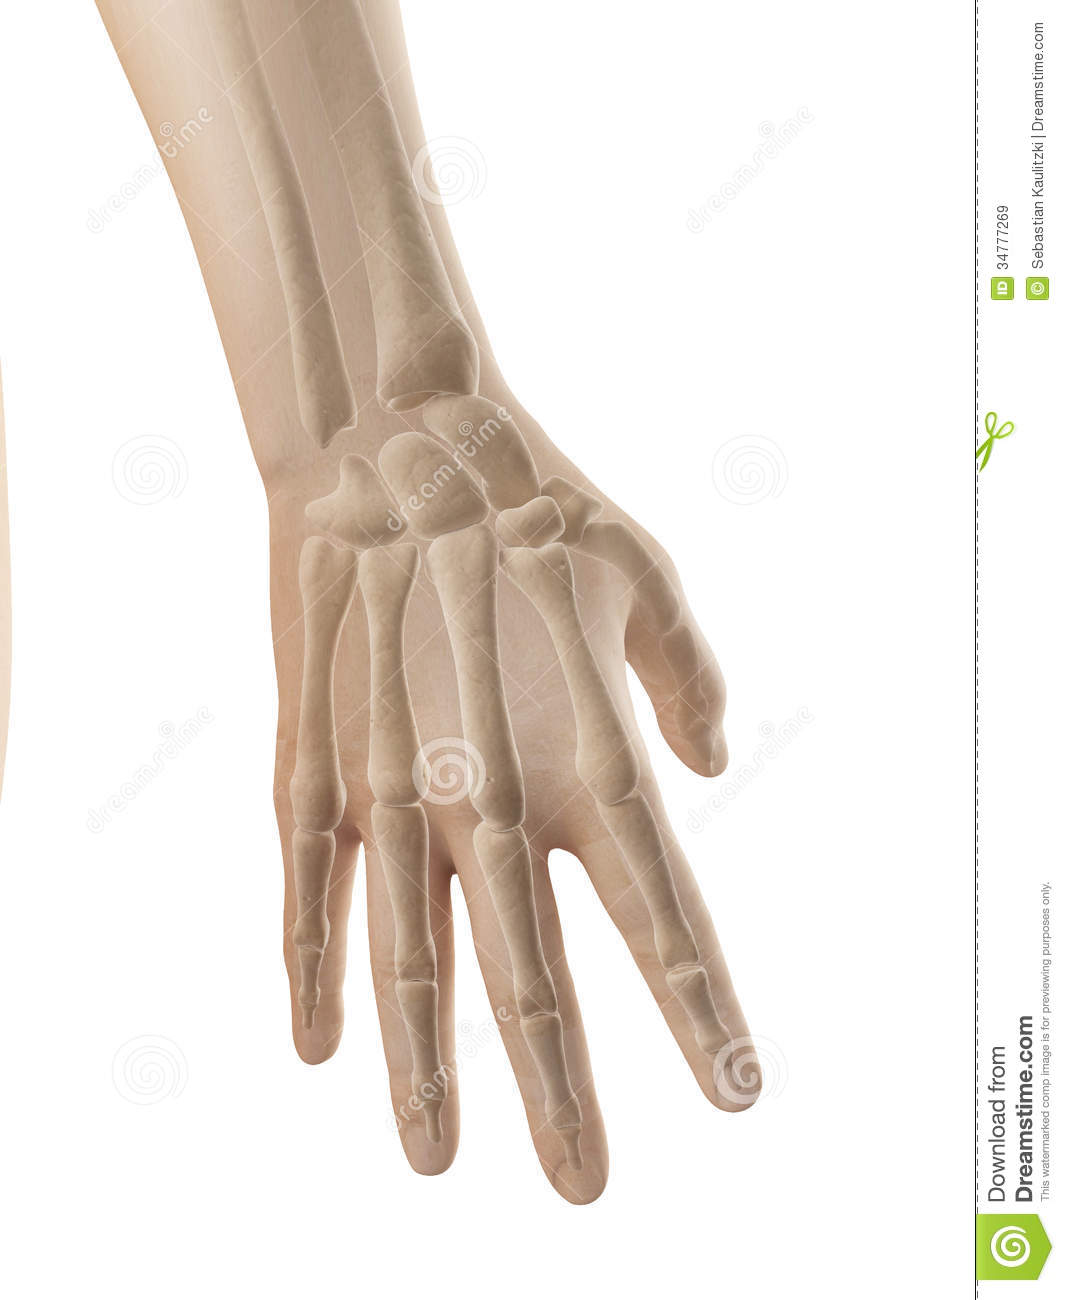 Hand Anatomy - Bones Of Hand And Fingers Stock Illustration ...